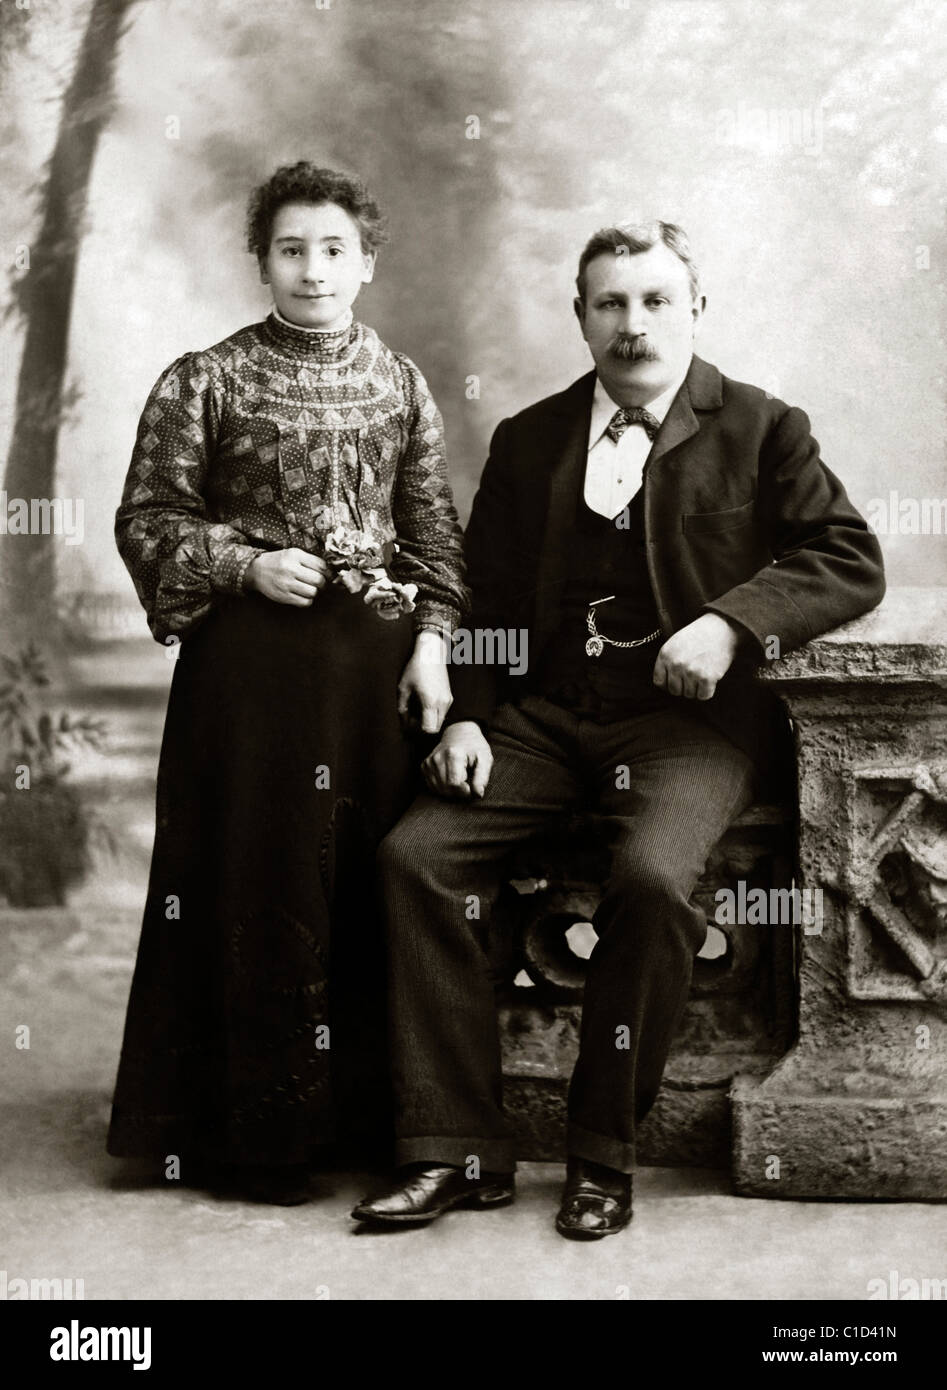 Old Portrait Photograph Of Husband And Wife In The 1900's After Restoration - Stock Image